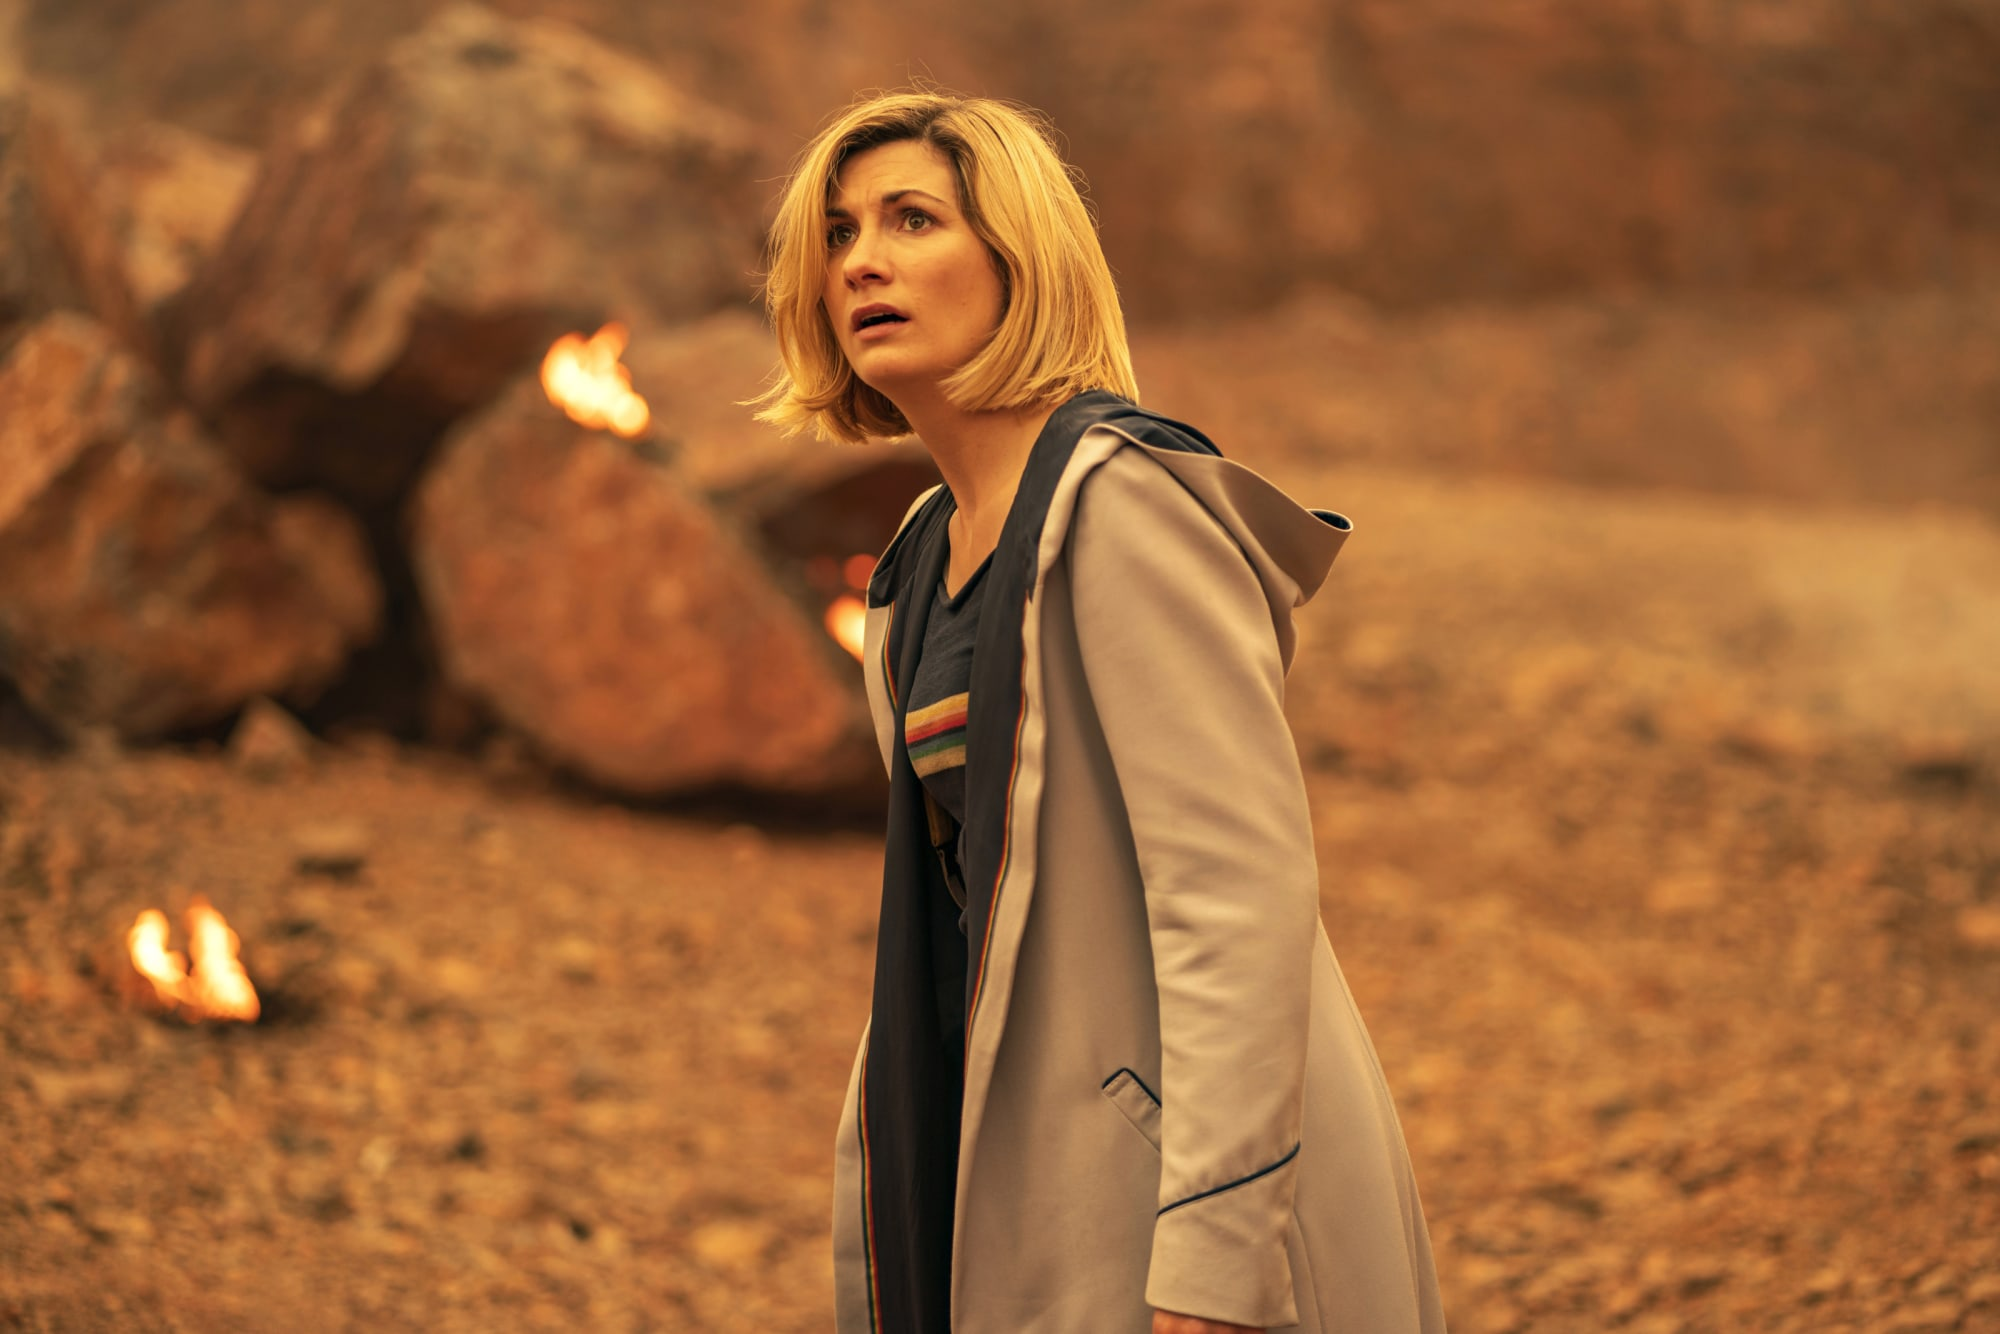 Doctor Who Day: Where is the show now and where is it heading?